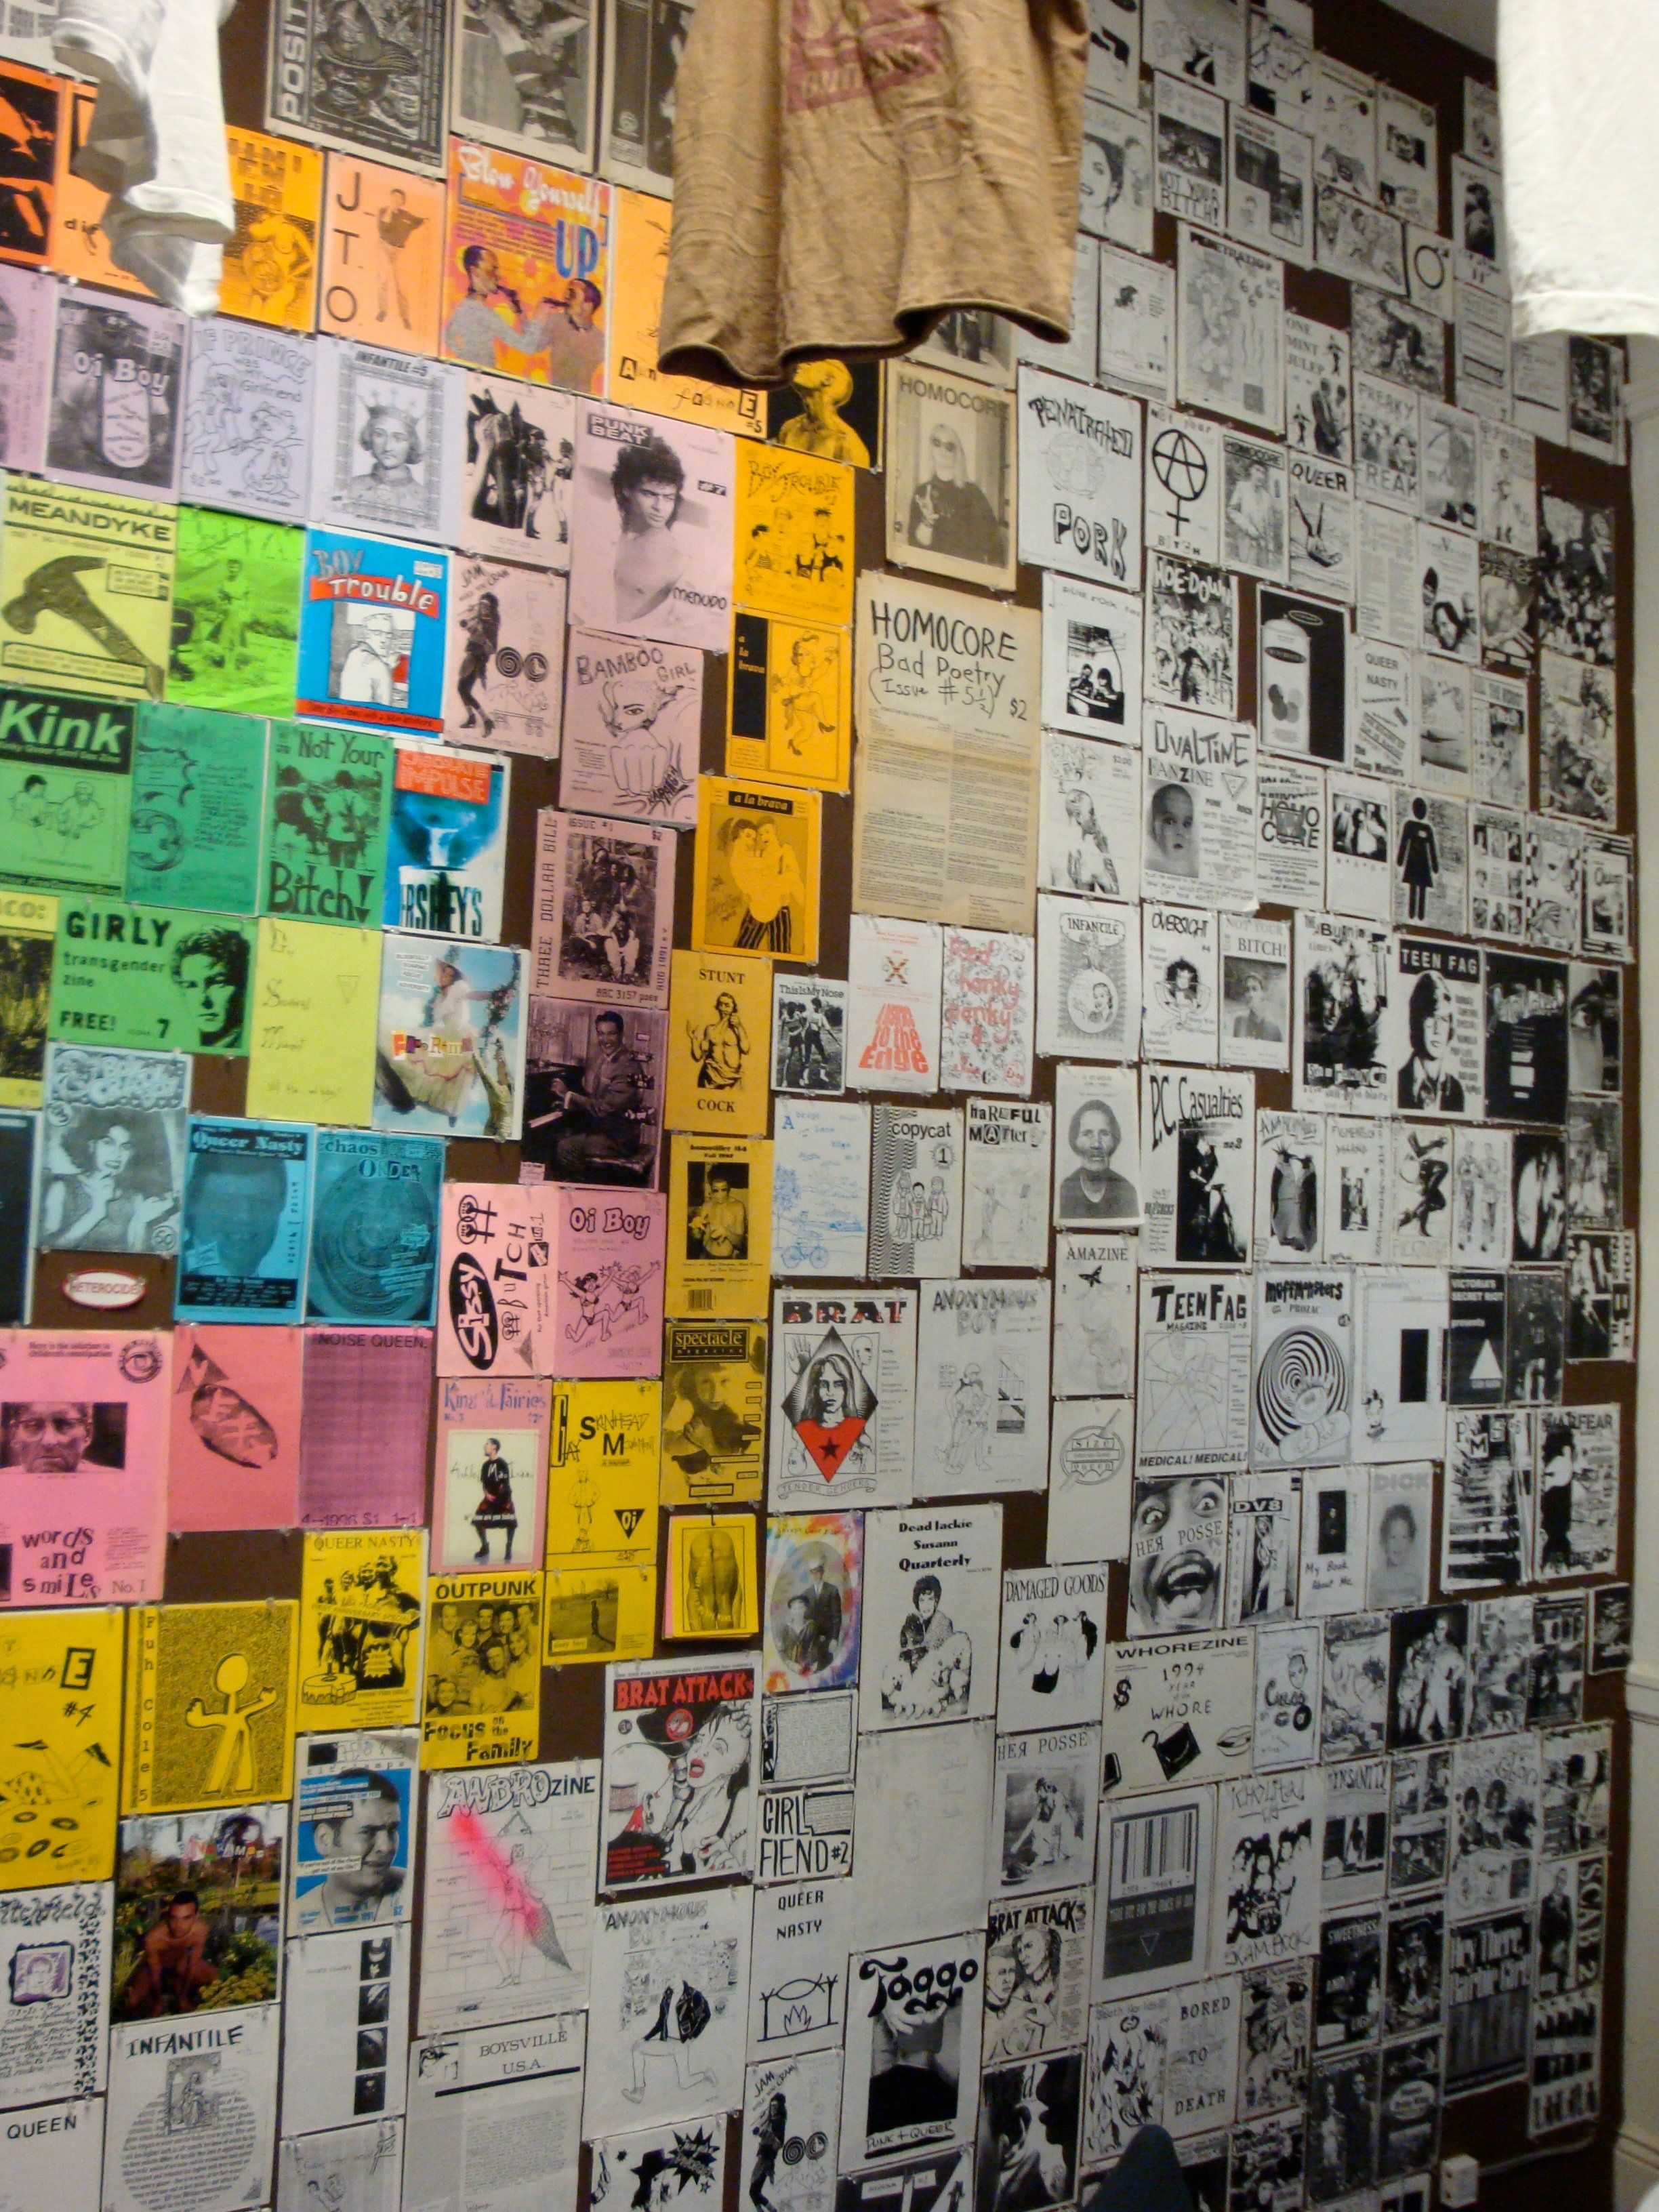 """Queer Zine show opening - the show is up through August 2009.   """"Yes I Am, But Who Am I Really?"""" Queercore zines and ephemera from the late 80s through 90s  <a href=""""http://goteblud.com"""" rel=""""nofollow"""">goteblud.com</a>"""